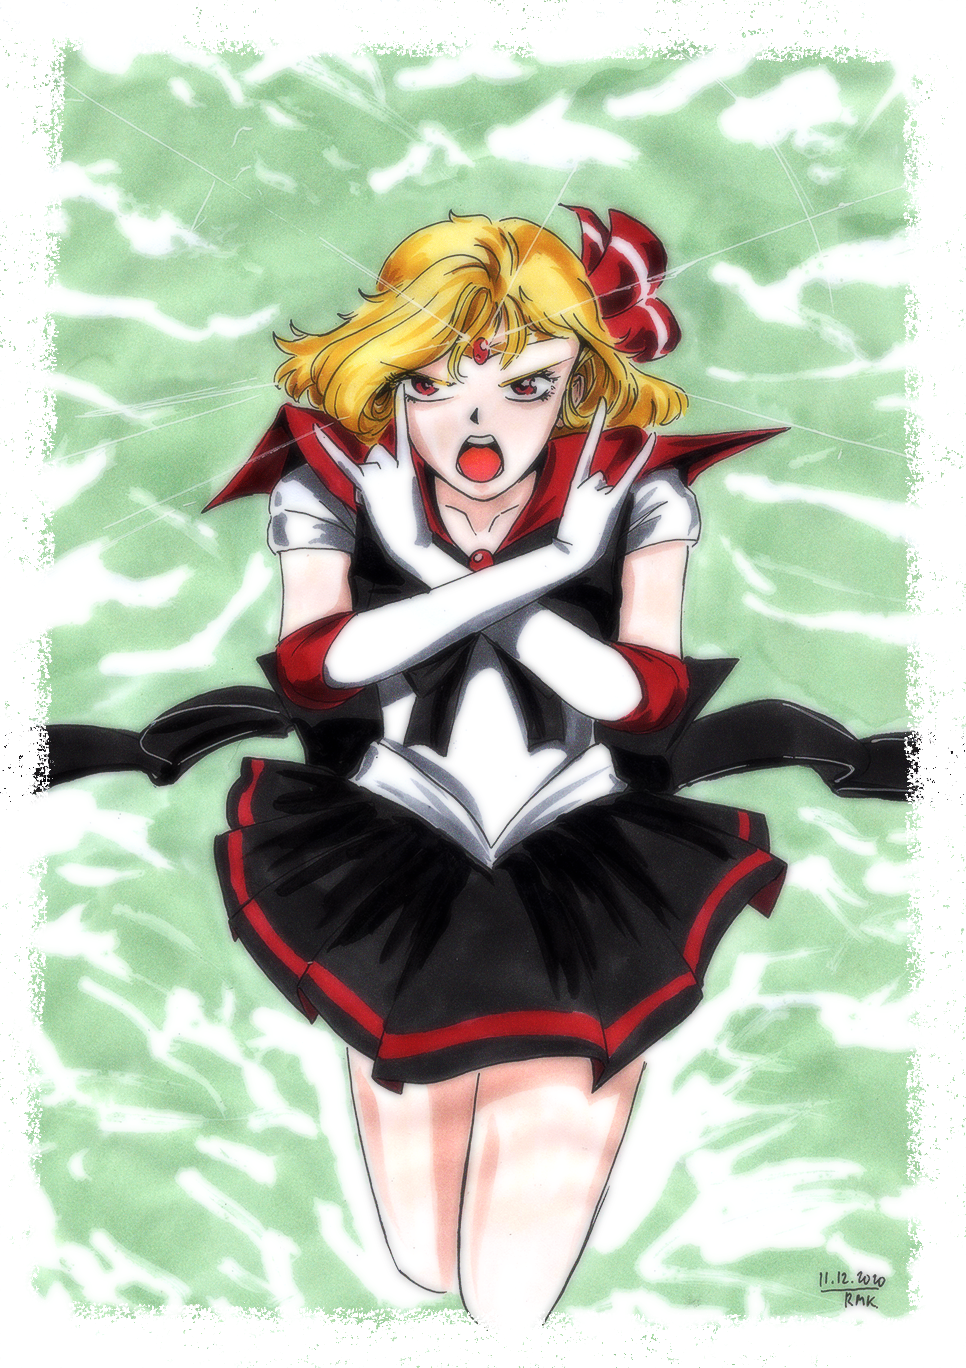 1girl angry black_skirt blonde_hair bow brooch circlet crossed_arms elbow_gloves gloves greyscale hair_bow hair_ribbon highres jewelry leotard looking_at_viewer monochrome open_mouth pleated_skirt red_eyes ribbon rumia rumiak sailor_collar sailor_moon sailor_senshi_uniform short_hair skirt touhou traditional_media white_gloves white_leotard